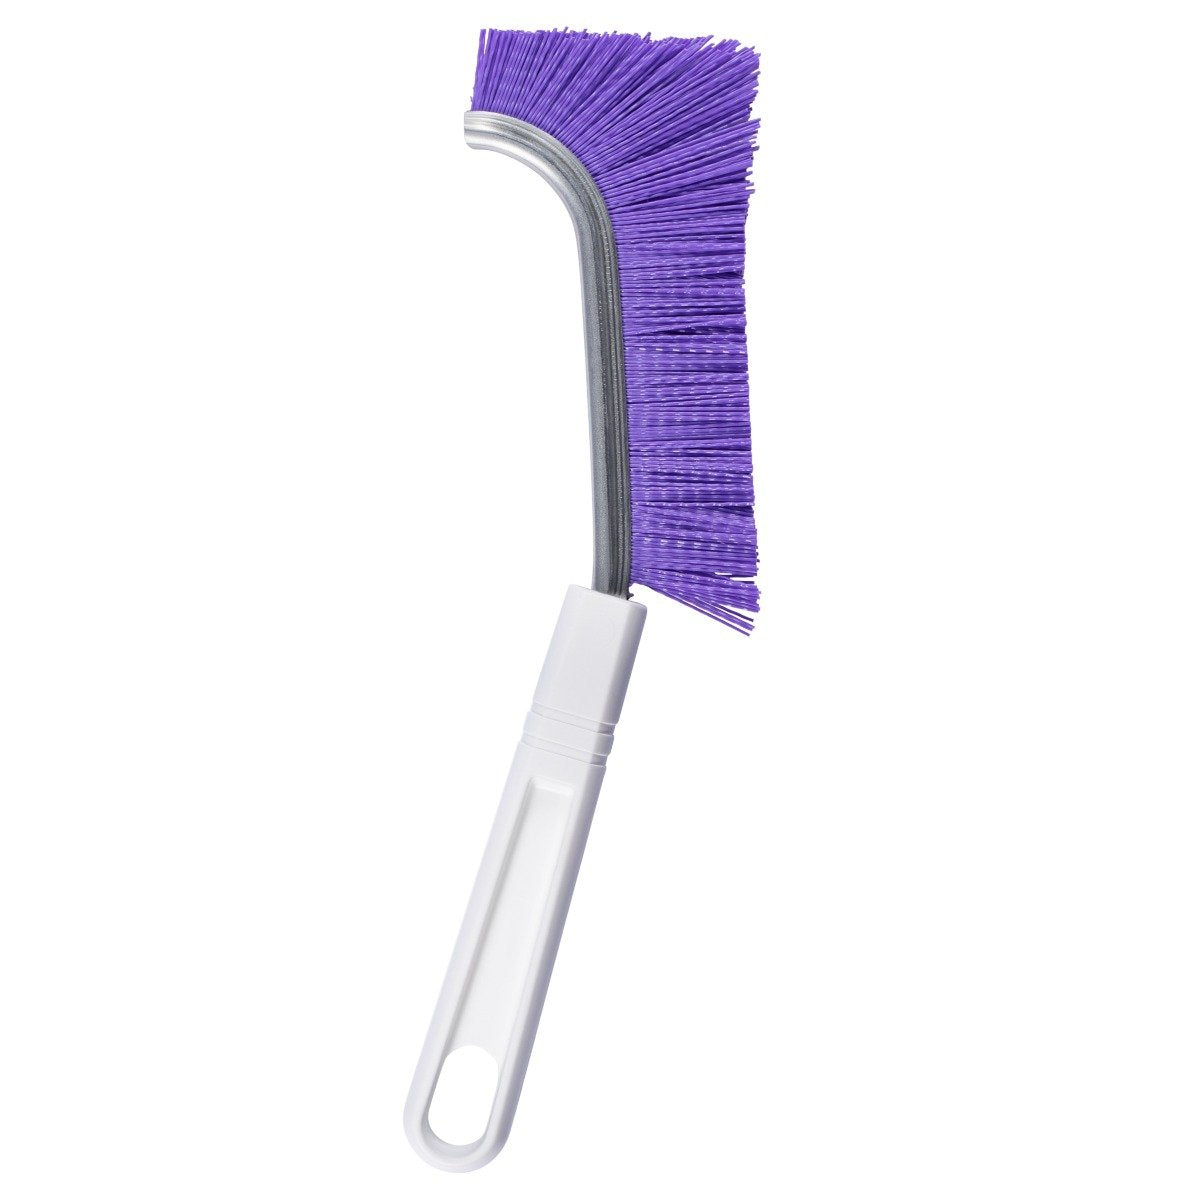 Shower Track And Grout Heavy Duty Scrub Brush w/ Comfort Grip & Stiff Bristles Purple-Cleaning Brushes-Fuller Brush Company